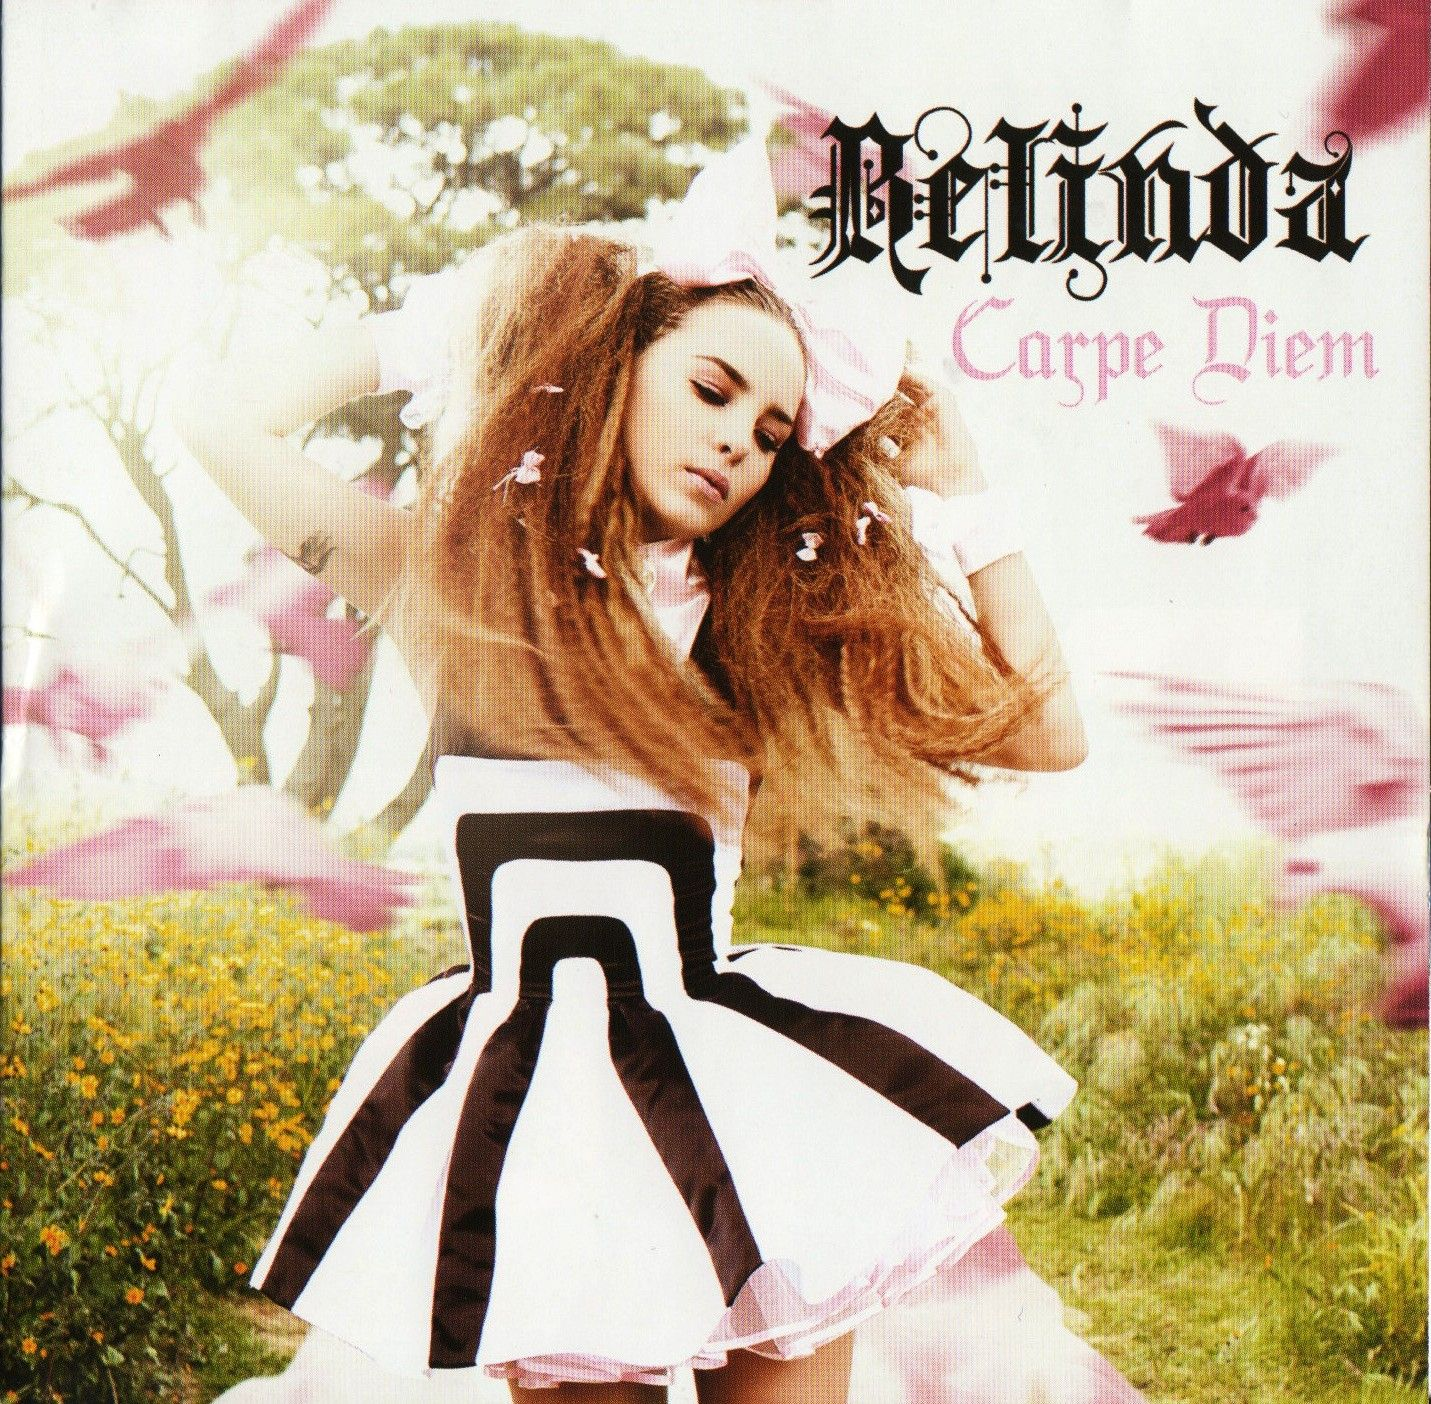 Belinda (Mx) - Carpe Diem album cover